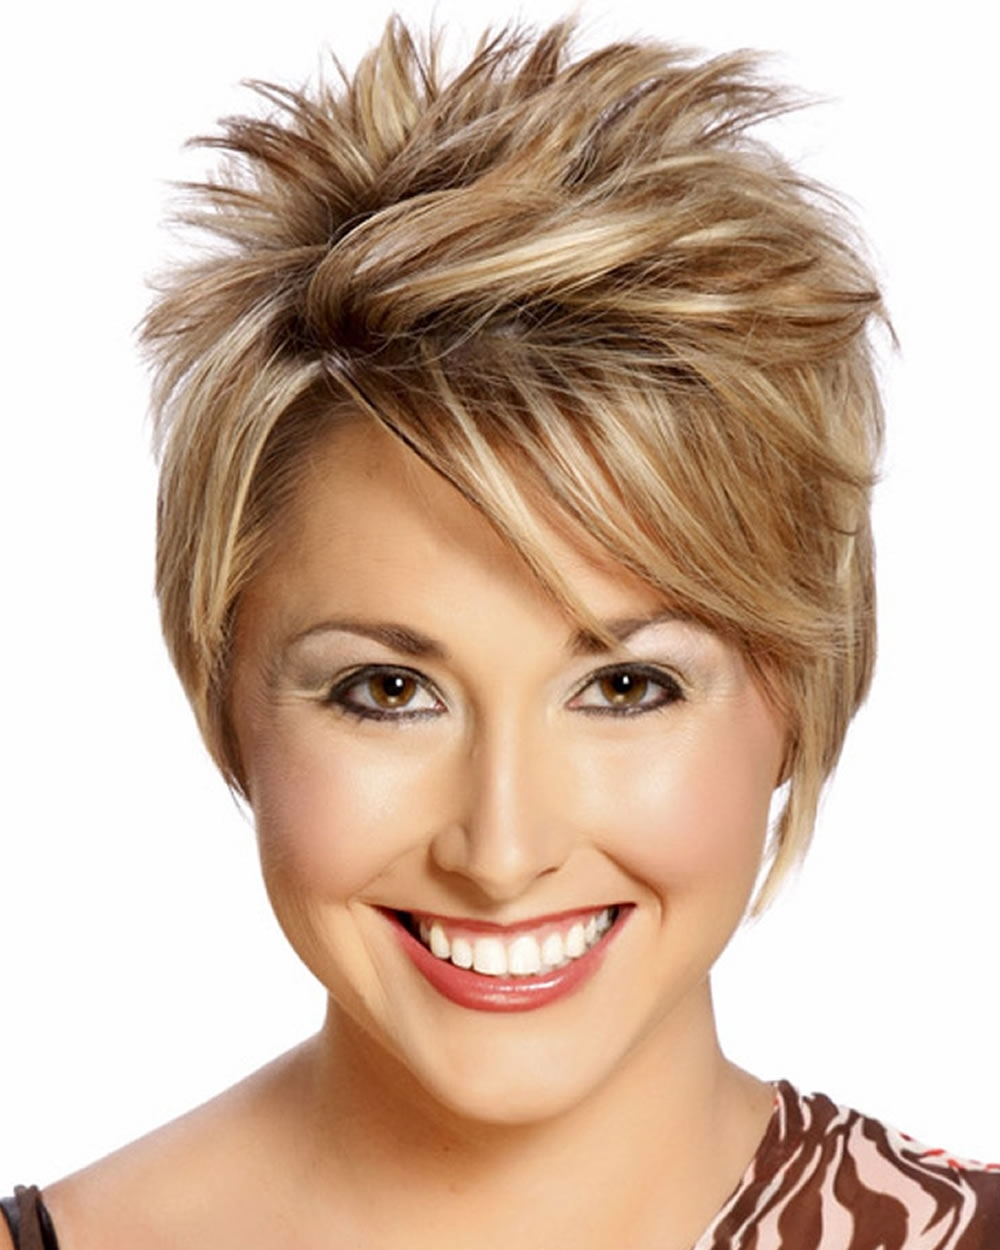 Current Spiked Blonde Mohawk Hairstyles Throughout Short Spiky Haircuts & Hairstyles For Women 2018 – Hairstyles (View 16 of 20)